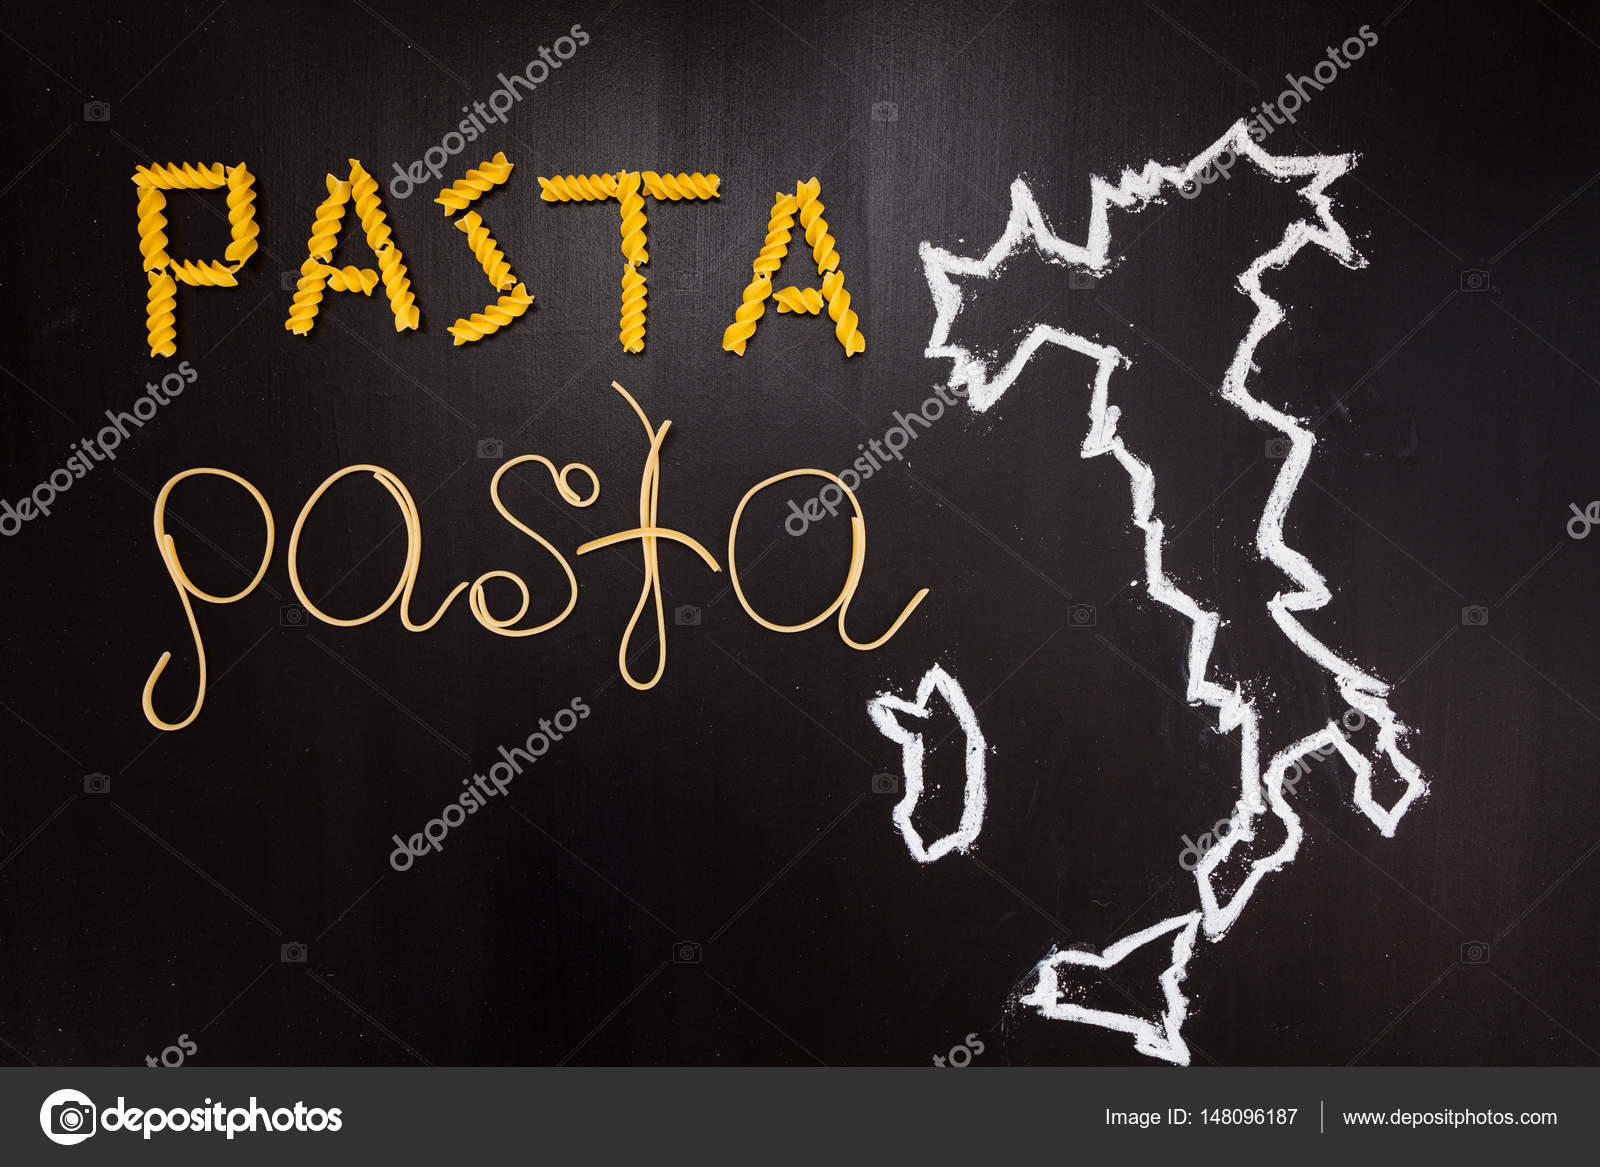 words pasta made cooked spaghetti dry pasta black background frame